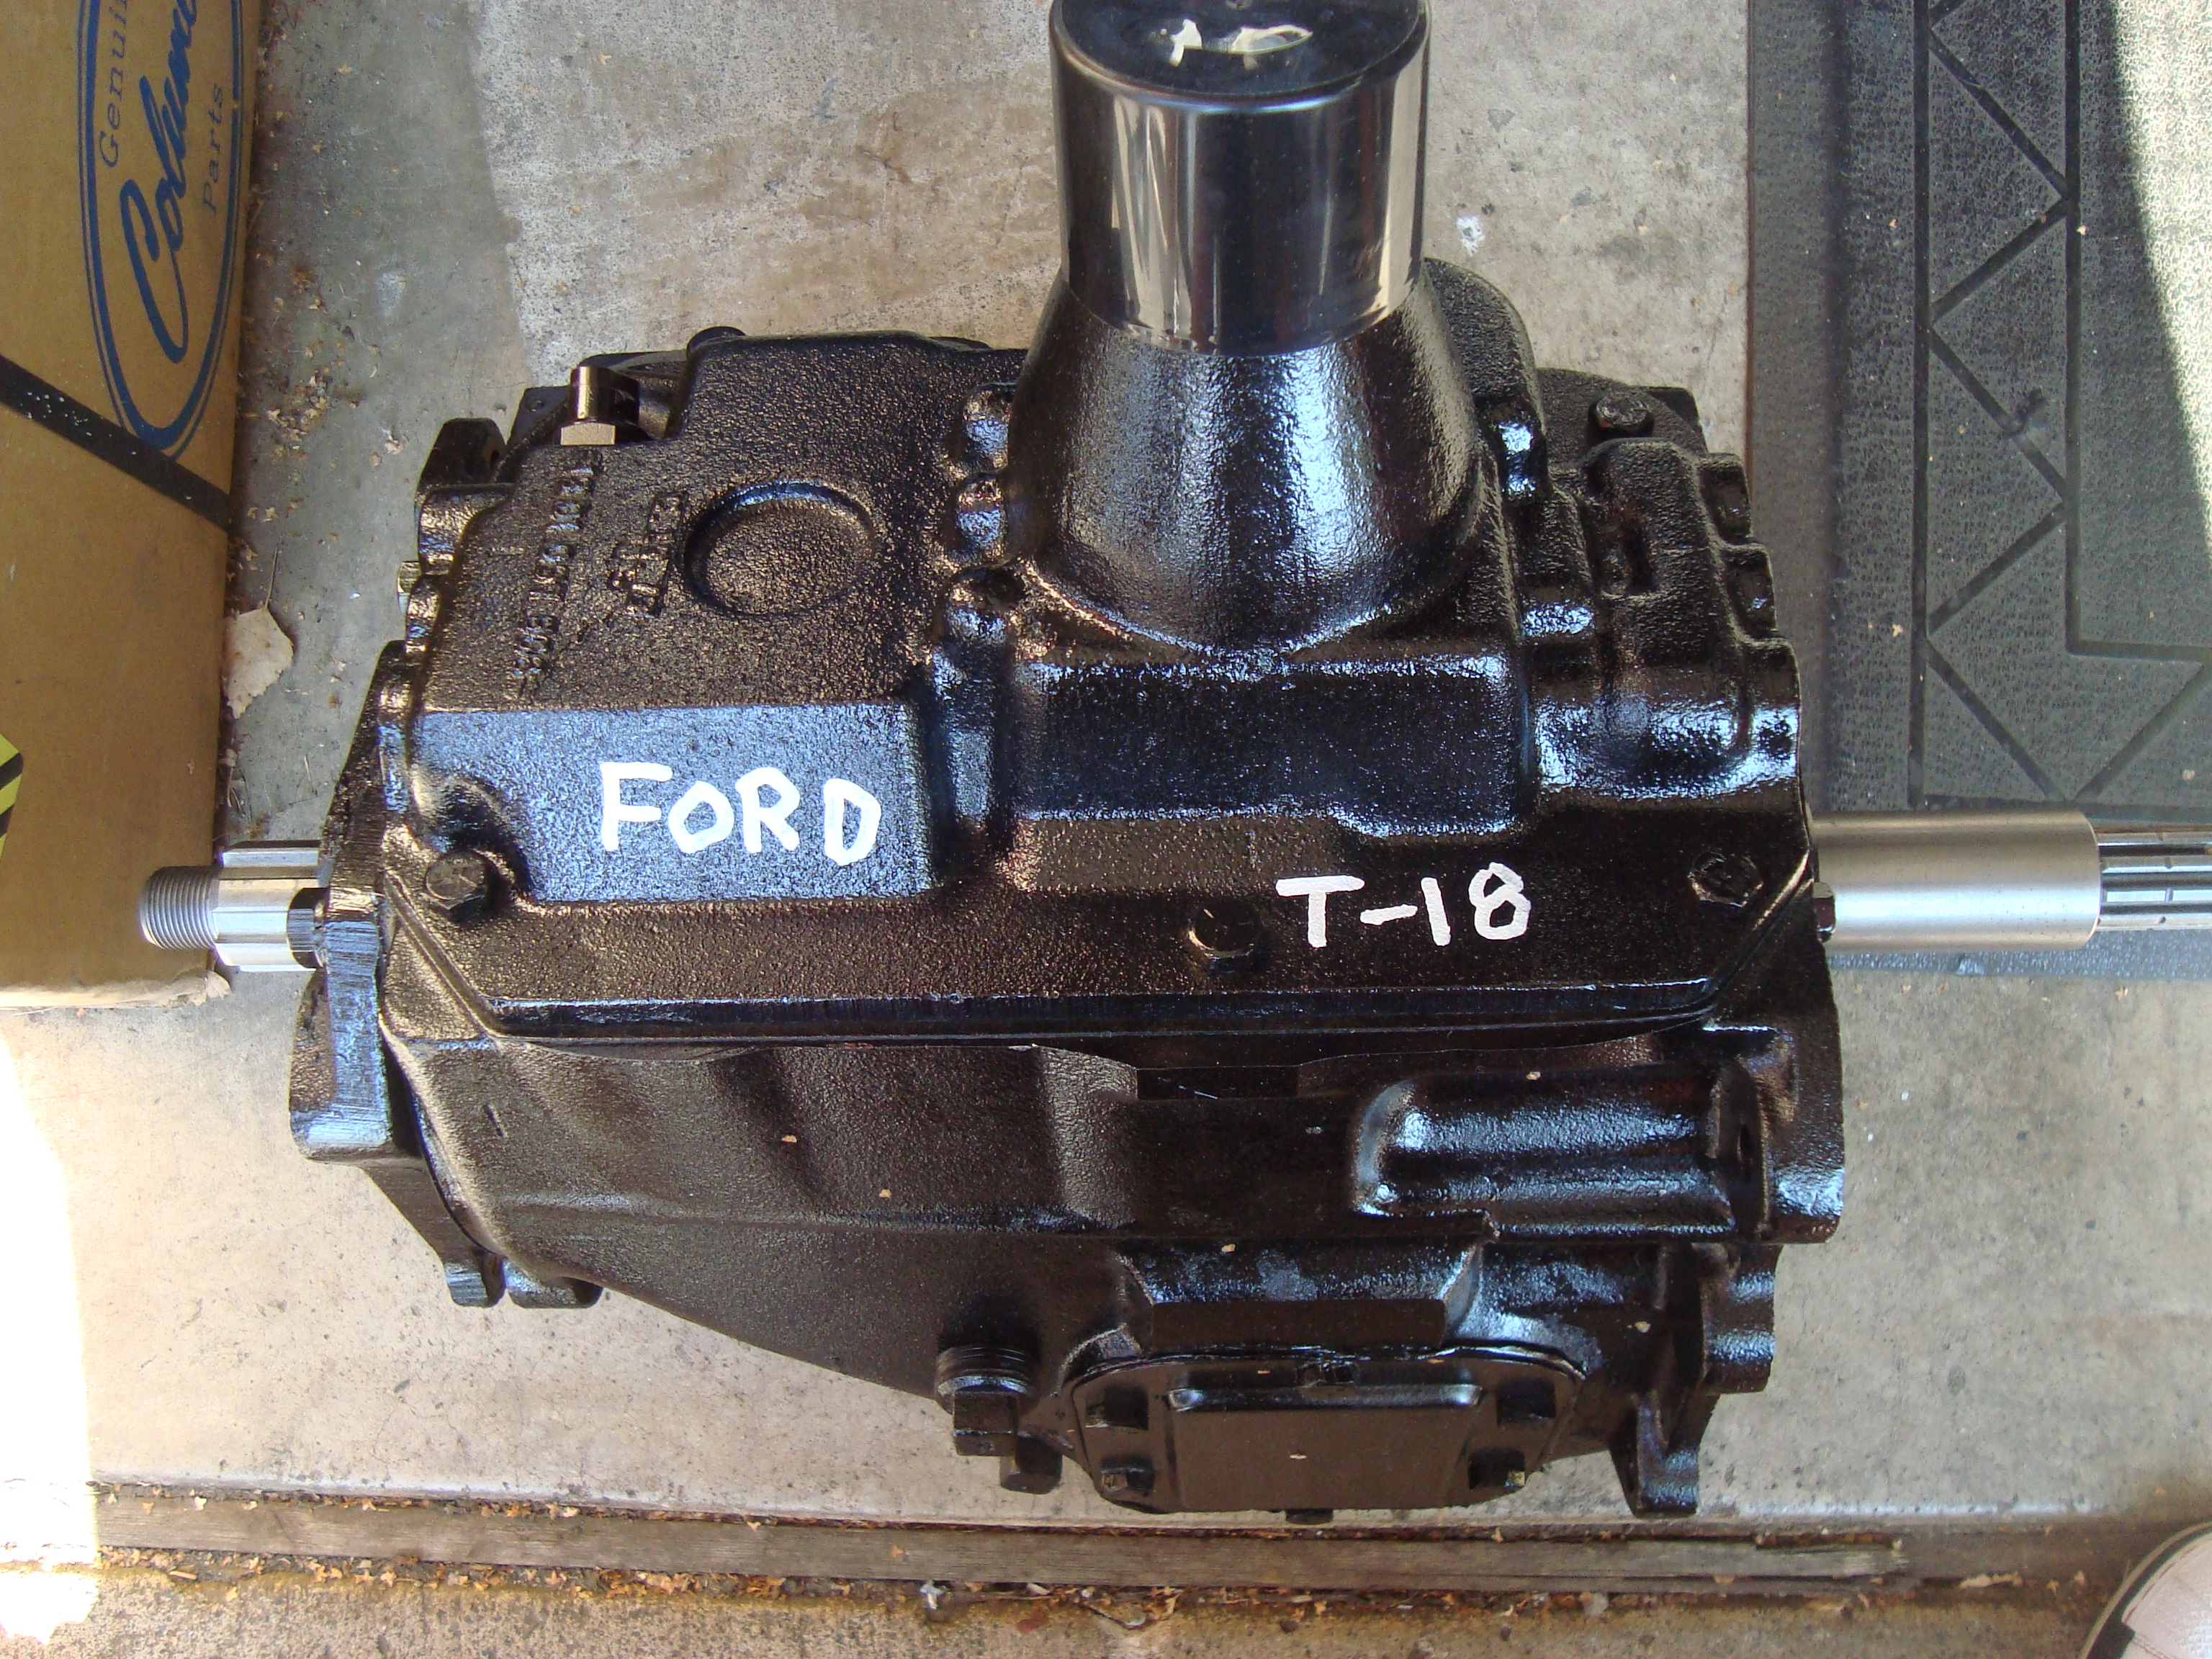 Rebuilt T-18 (Ford Pattern) 4 Speed, $1100 | Herm The